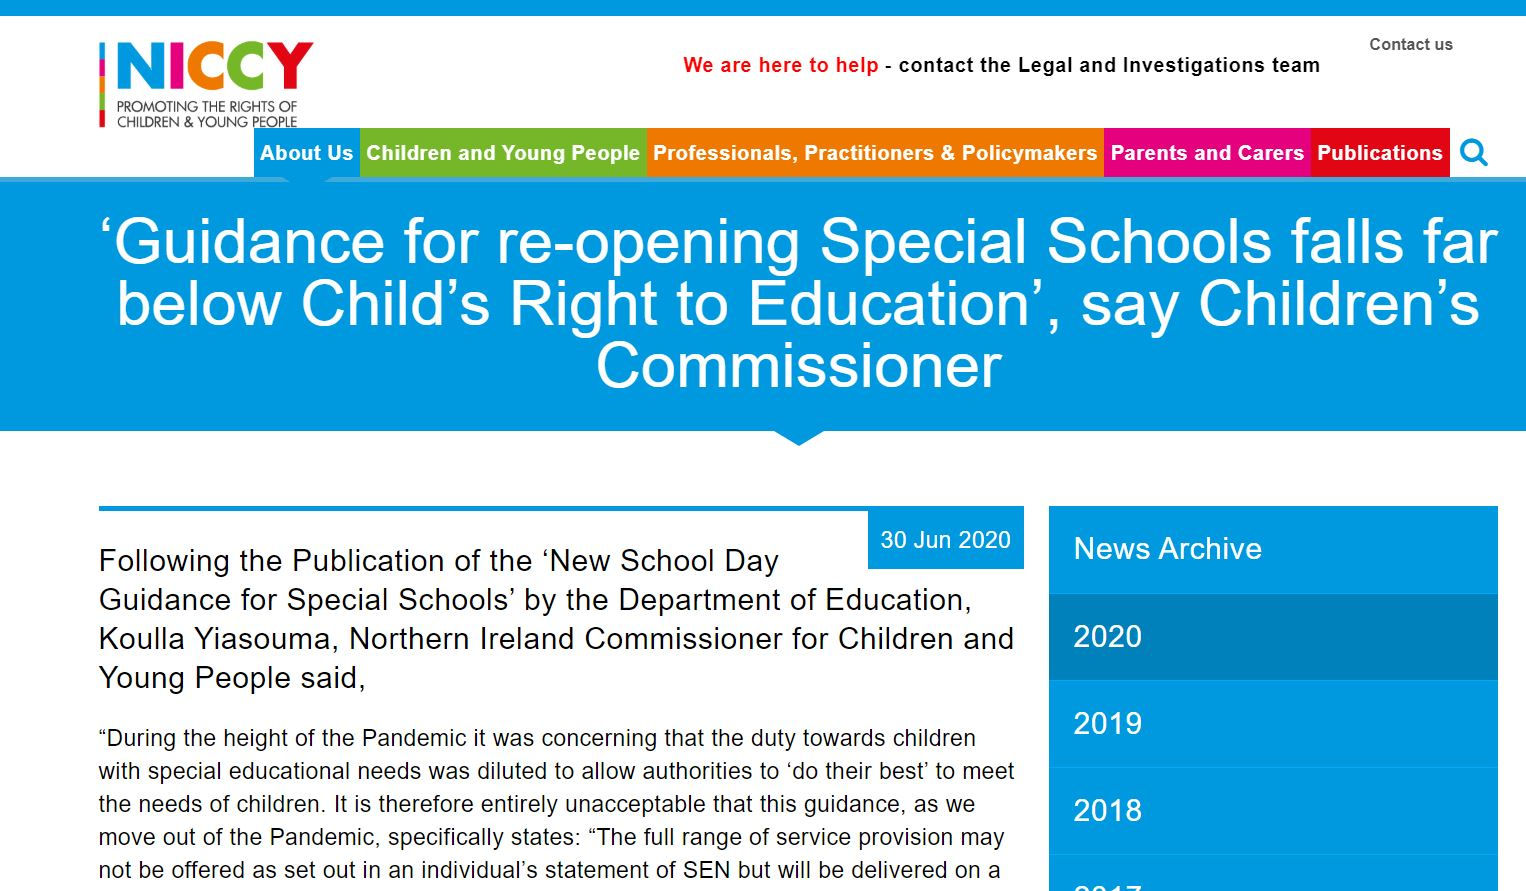 Image of 'Guidance for re-opening Special Schools falls far below Child's Right to Education', say Children's Commissioner